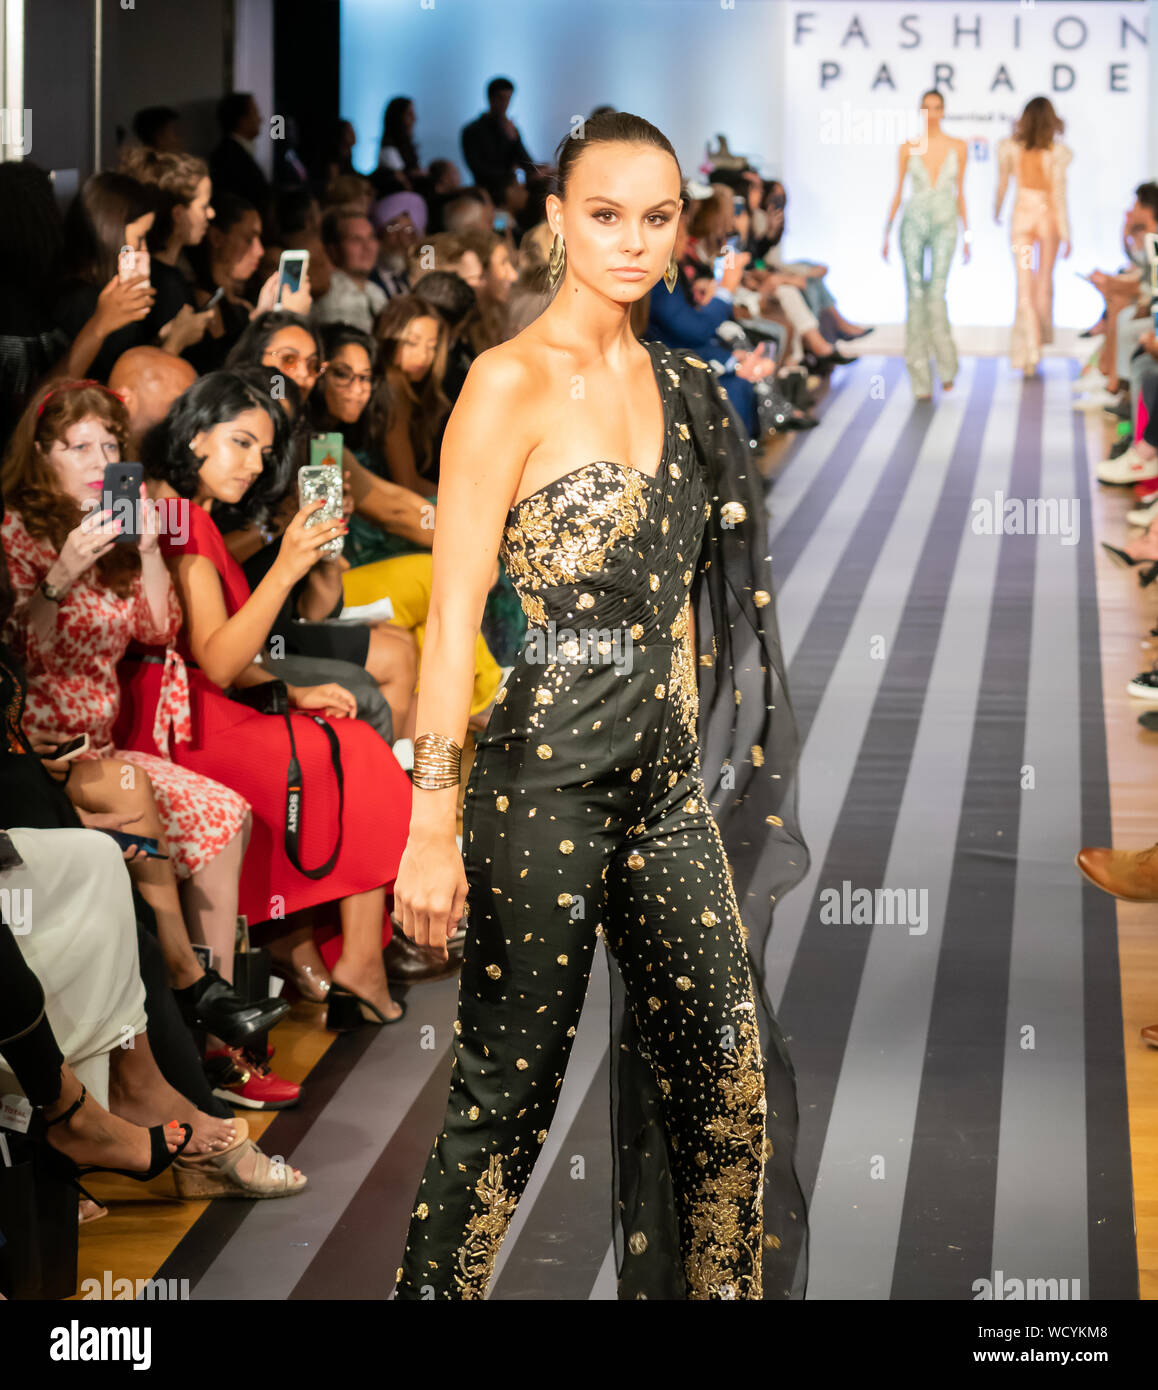 Manhattan New York Usa August 27 2019 Fashion Parade At Christie S South Asian Designs Of Ali Xeeshan Delhi Vintage Co Elan By Khadijah Shah Stock Photo Alamy